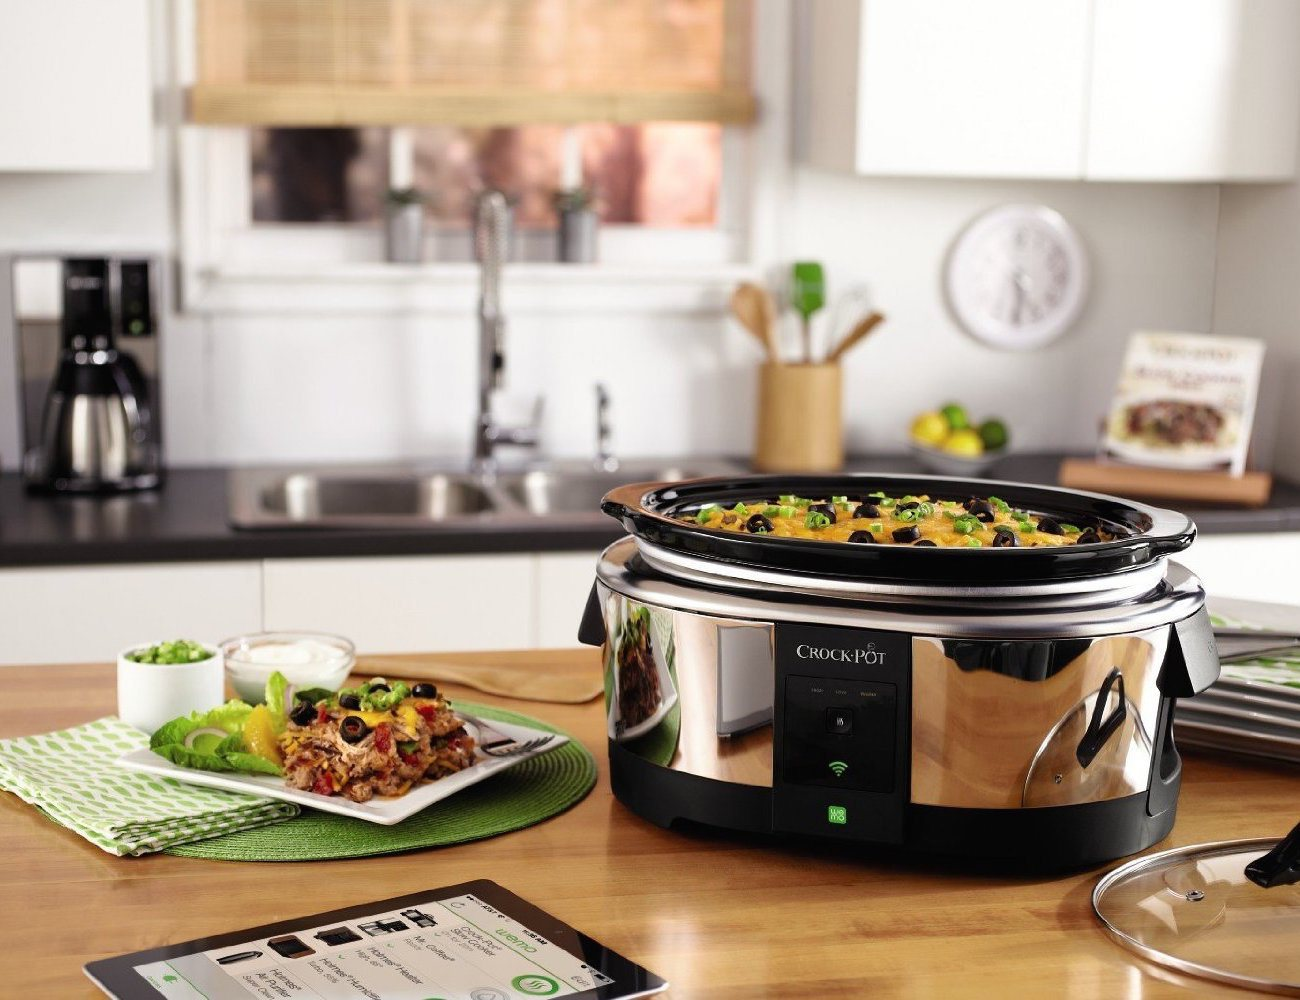 Crock-Pot – Smart Slow Cooker by WeMo